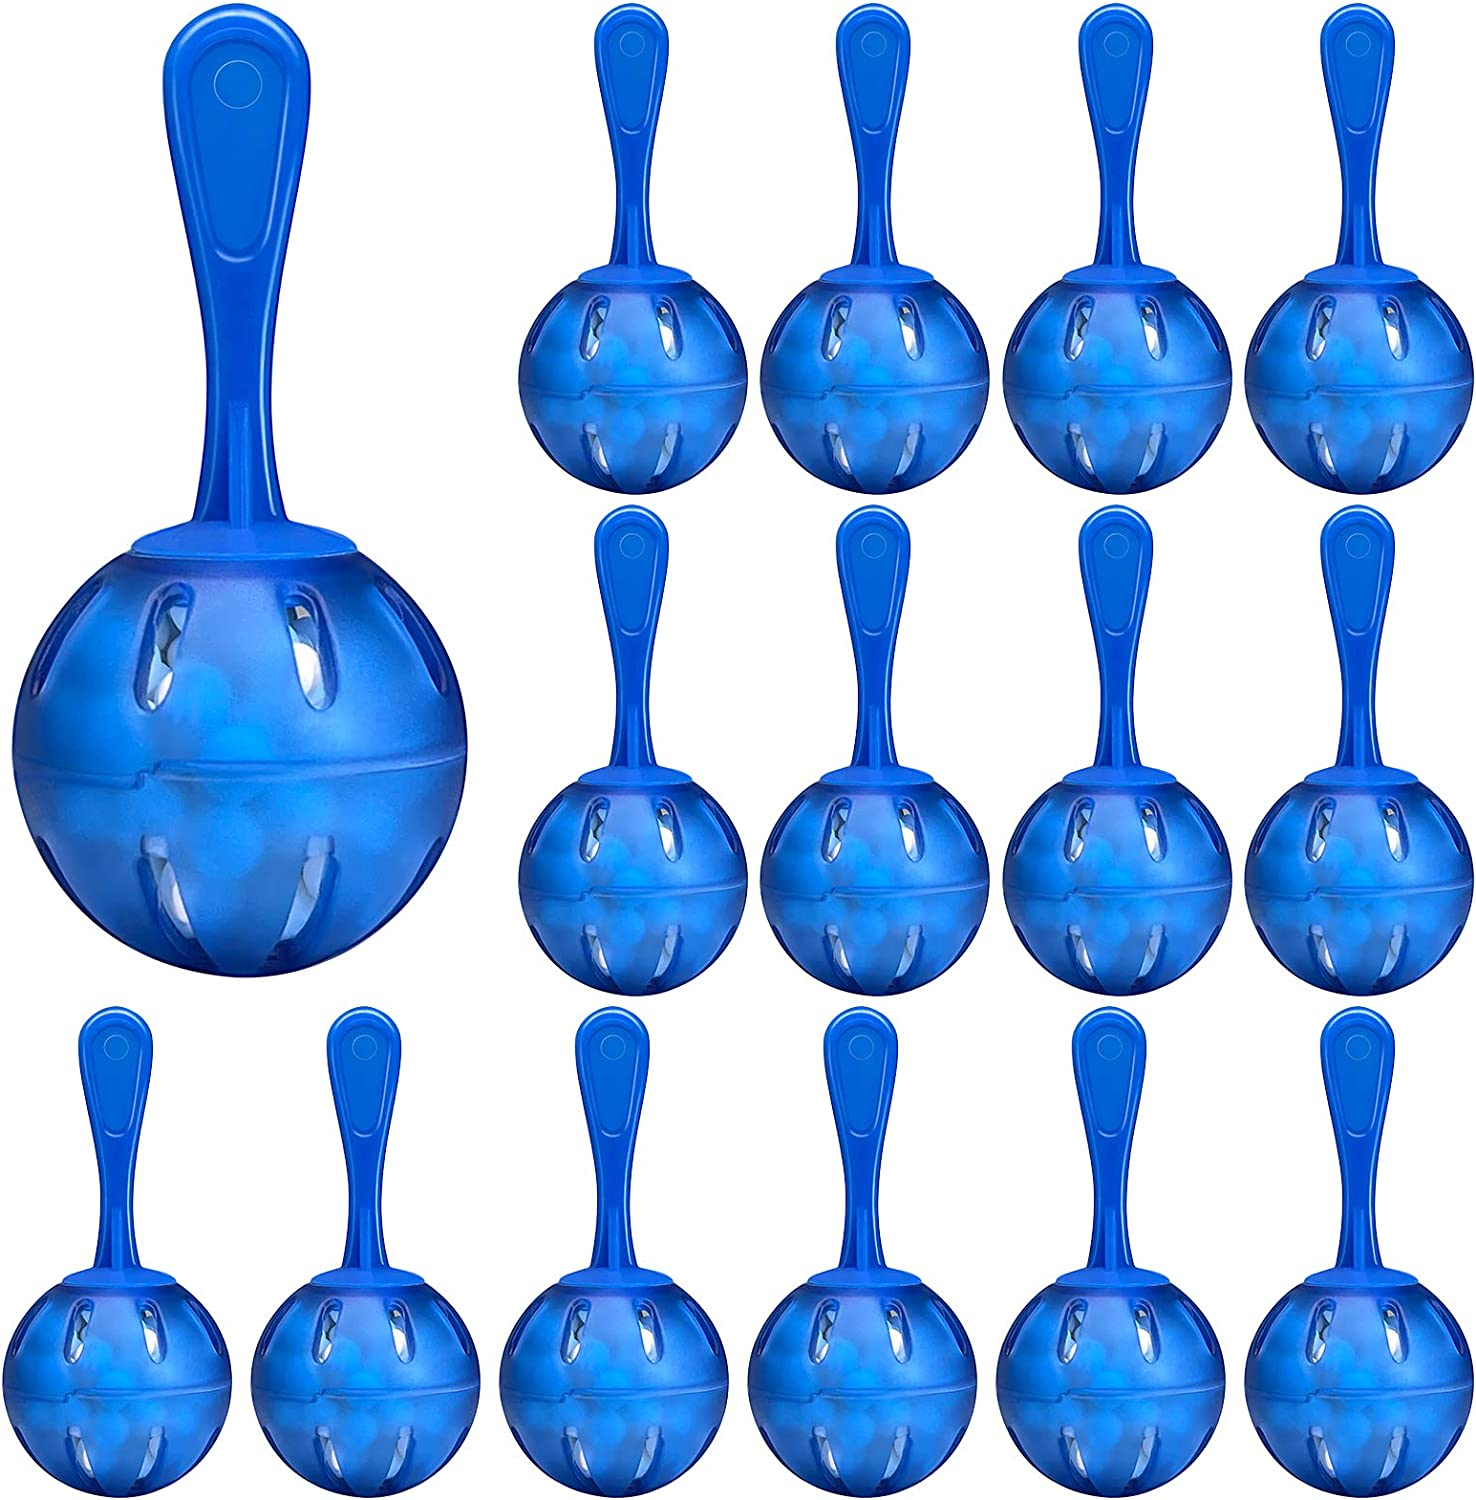 Milwaukee Mall Ravn 15 PCS PC-1 Humidifier Tank Branded goods P Ball Cleaning Compatible with